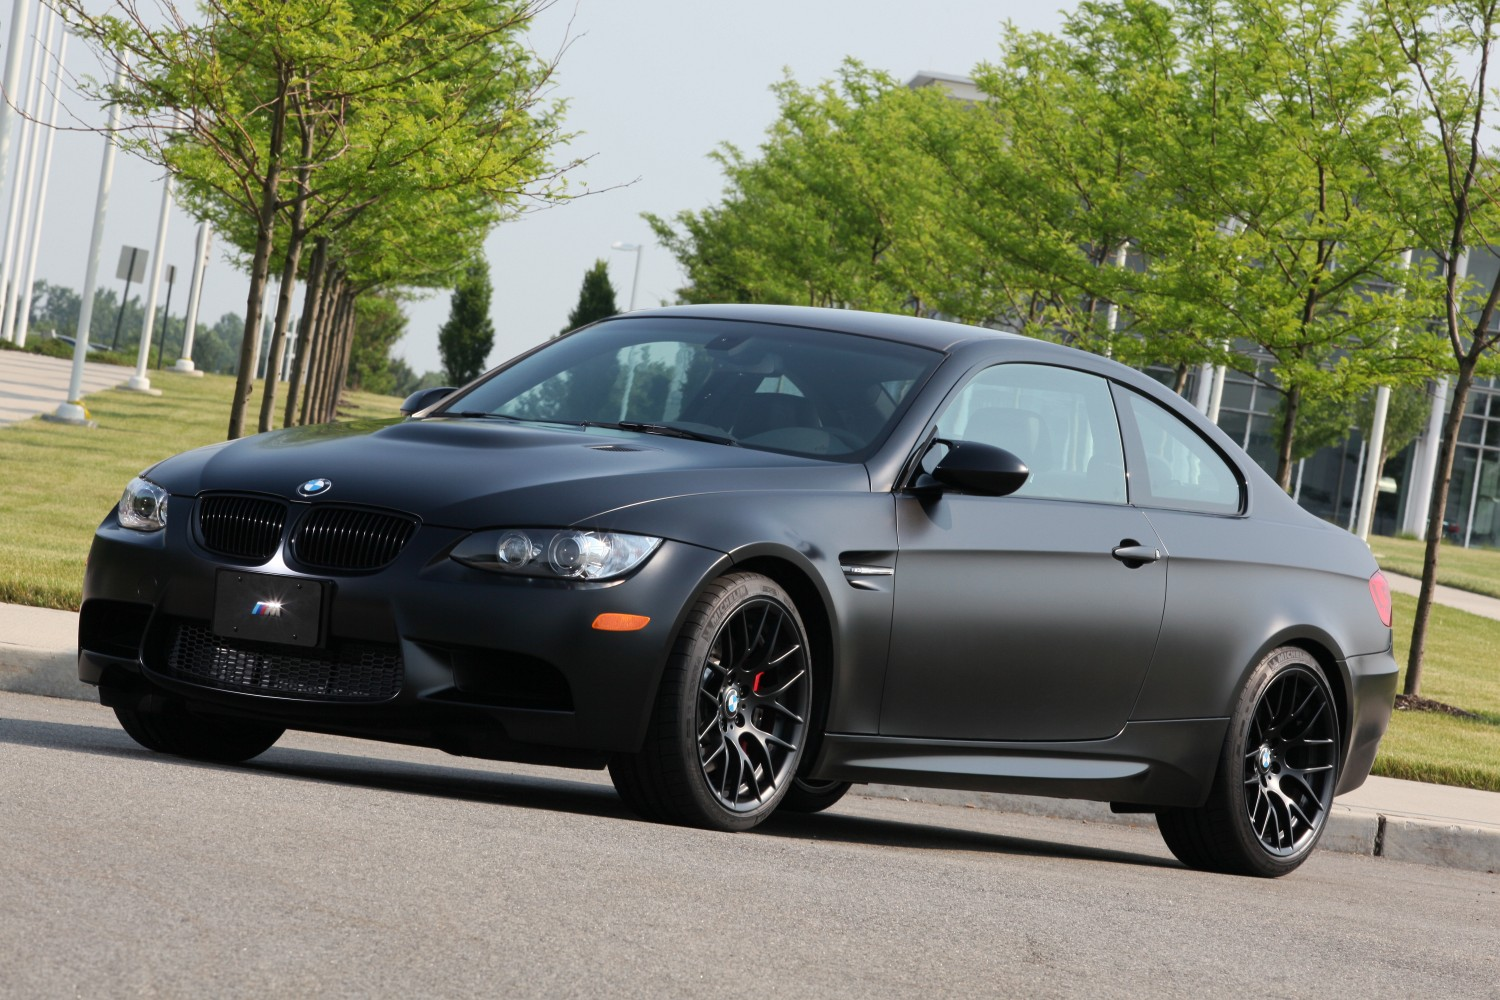 2011 Bmw M3 Frozen Black Coupe Like Frozen Gray Only Darker